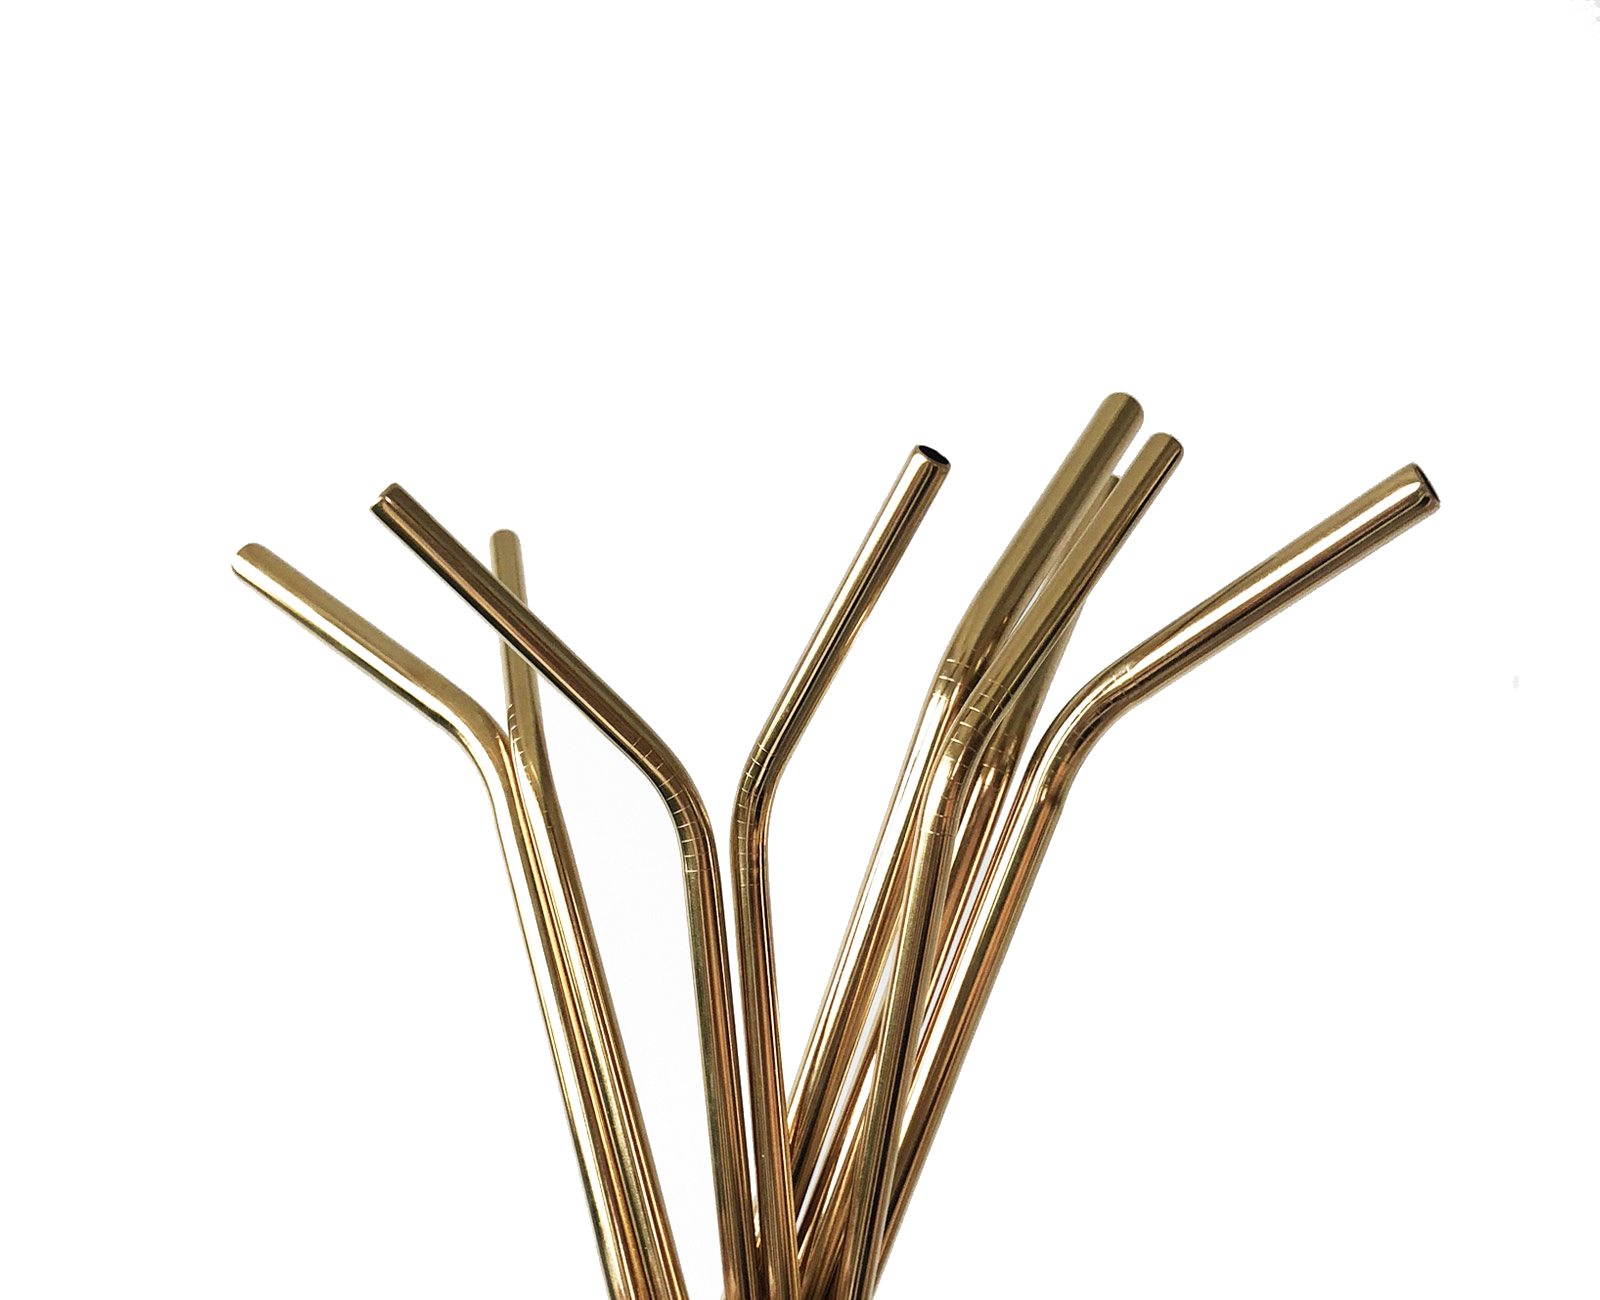 party kit including 4 stainless steel straws and 1 straw cleaner